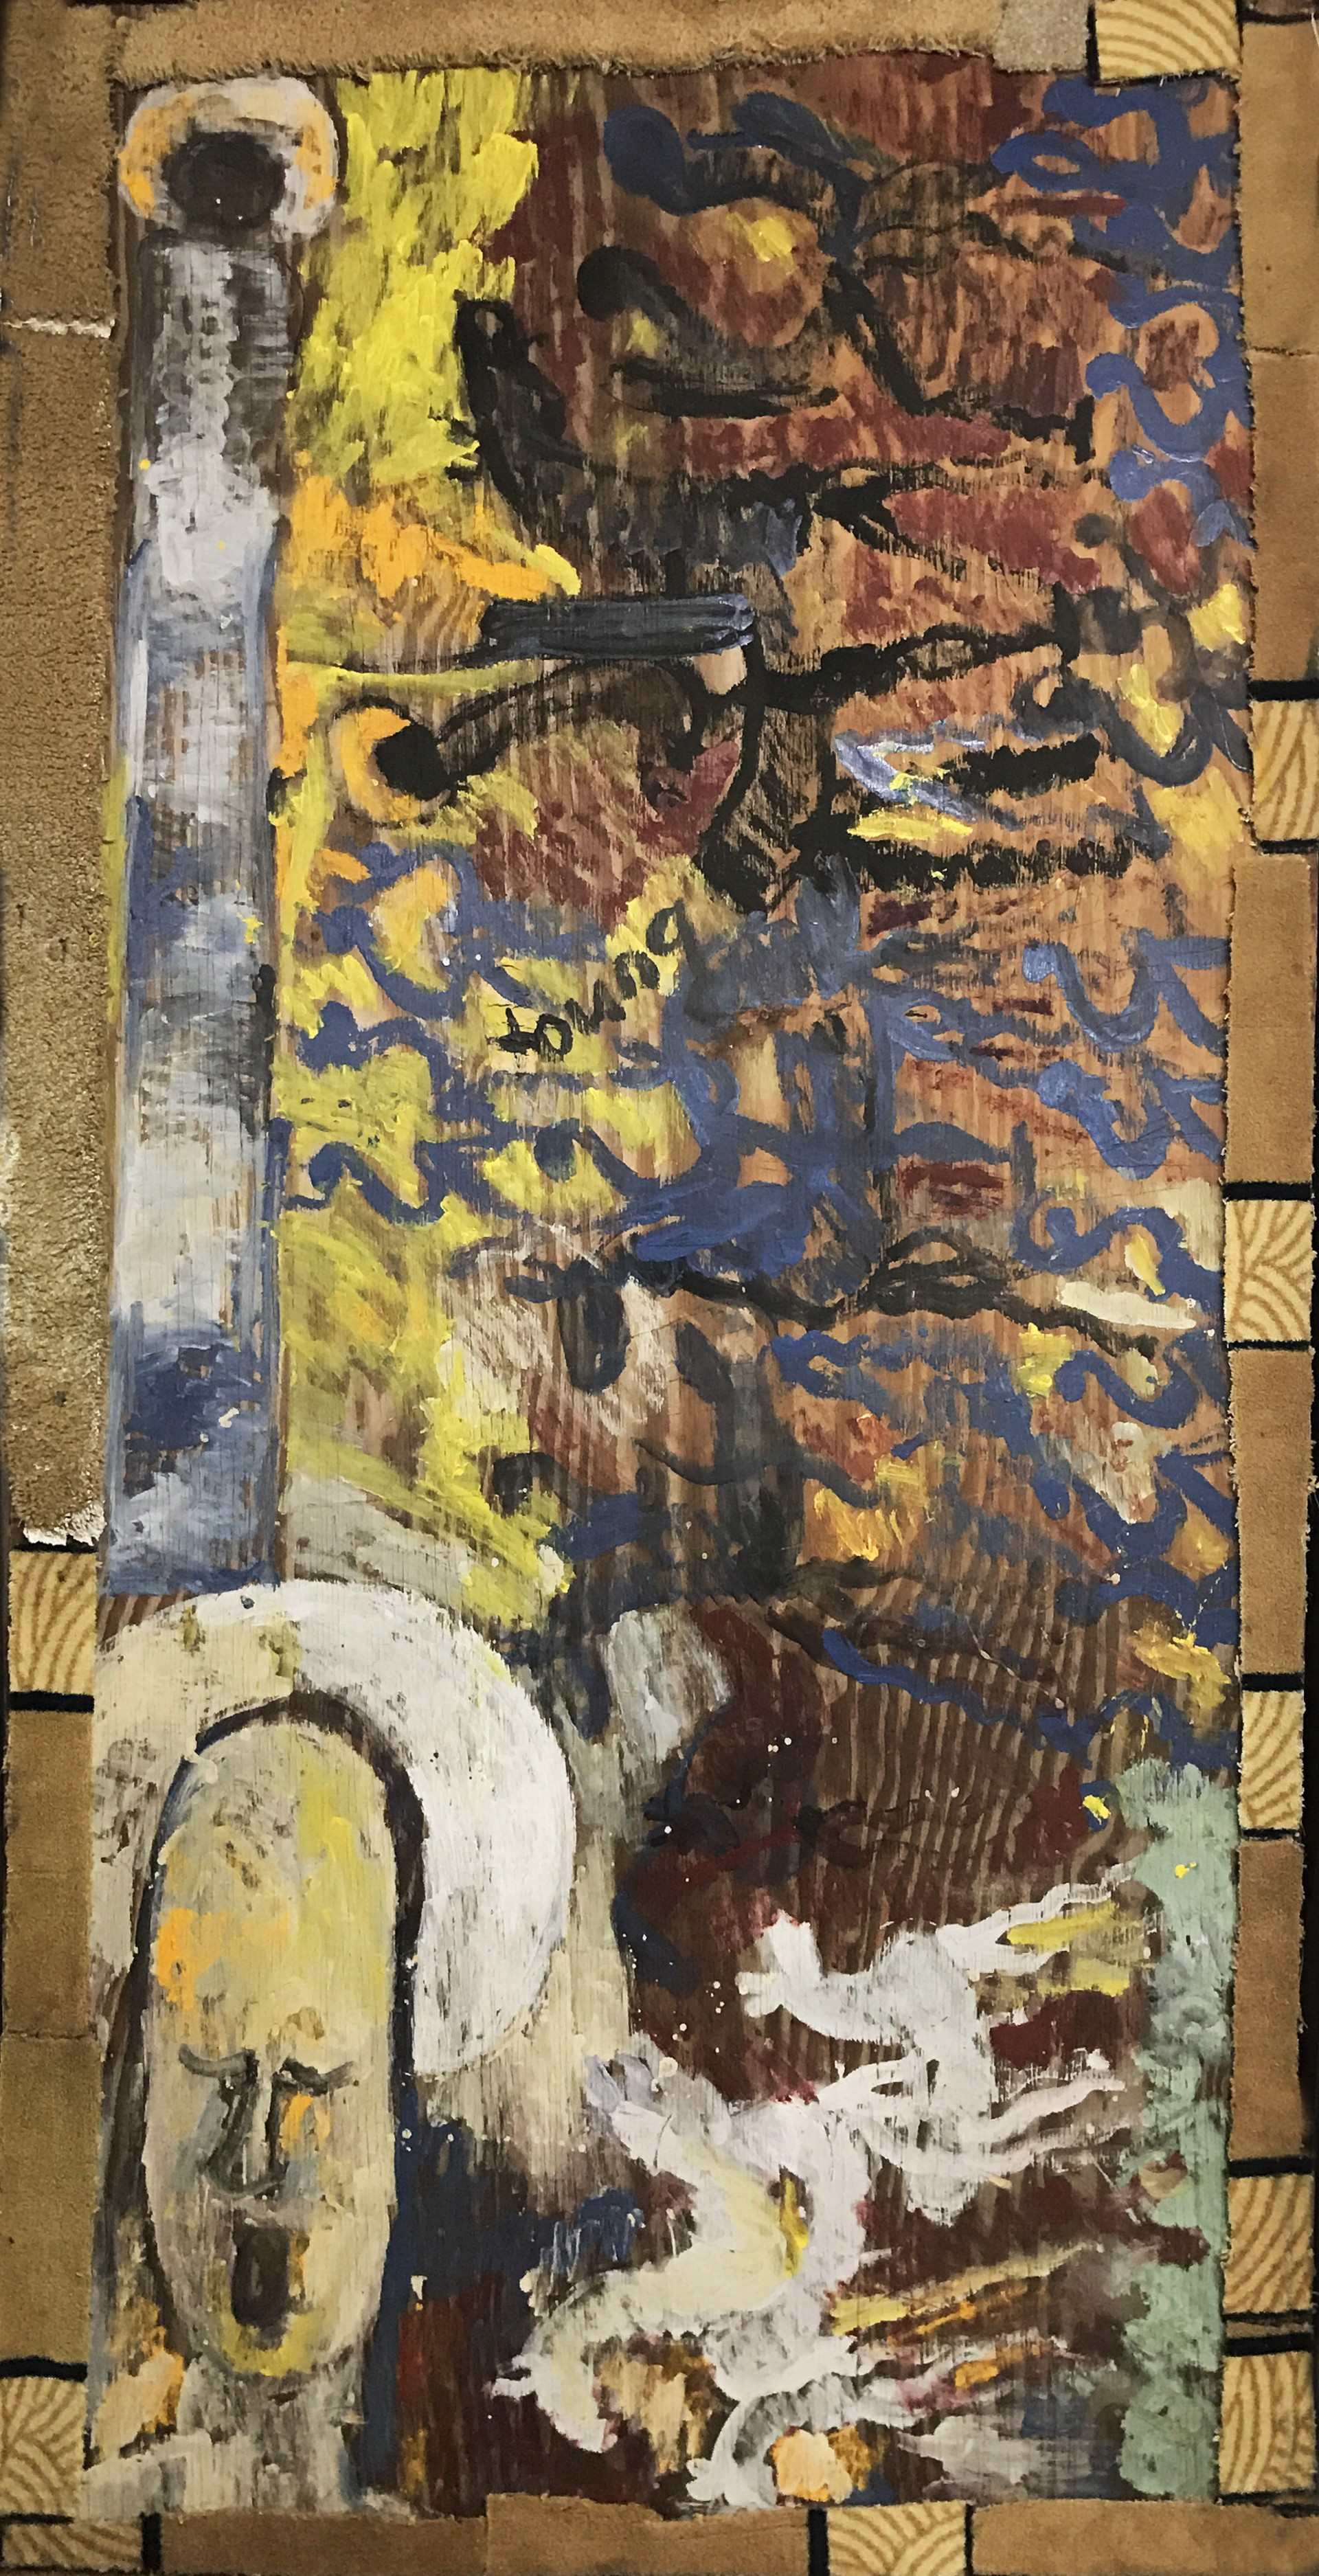 NOT FOR SALE - Saint Michael's Battle by Purvis Young (1943 - 2010)